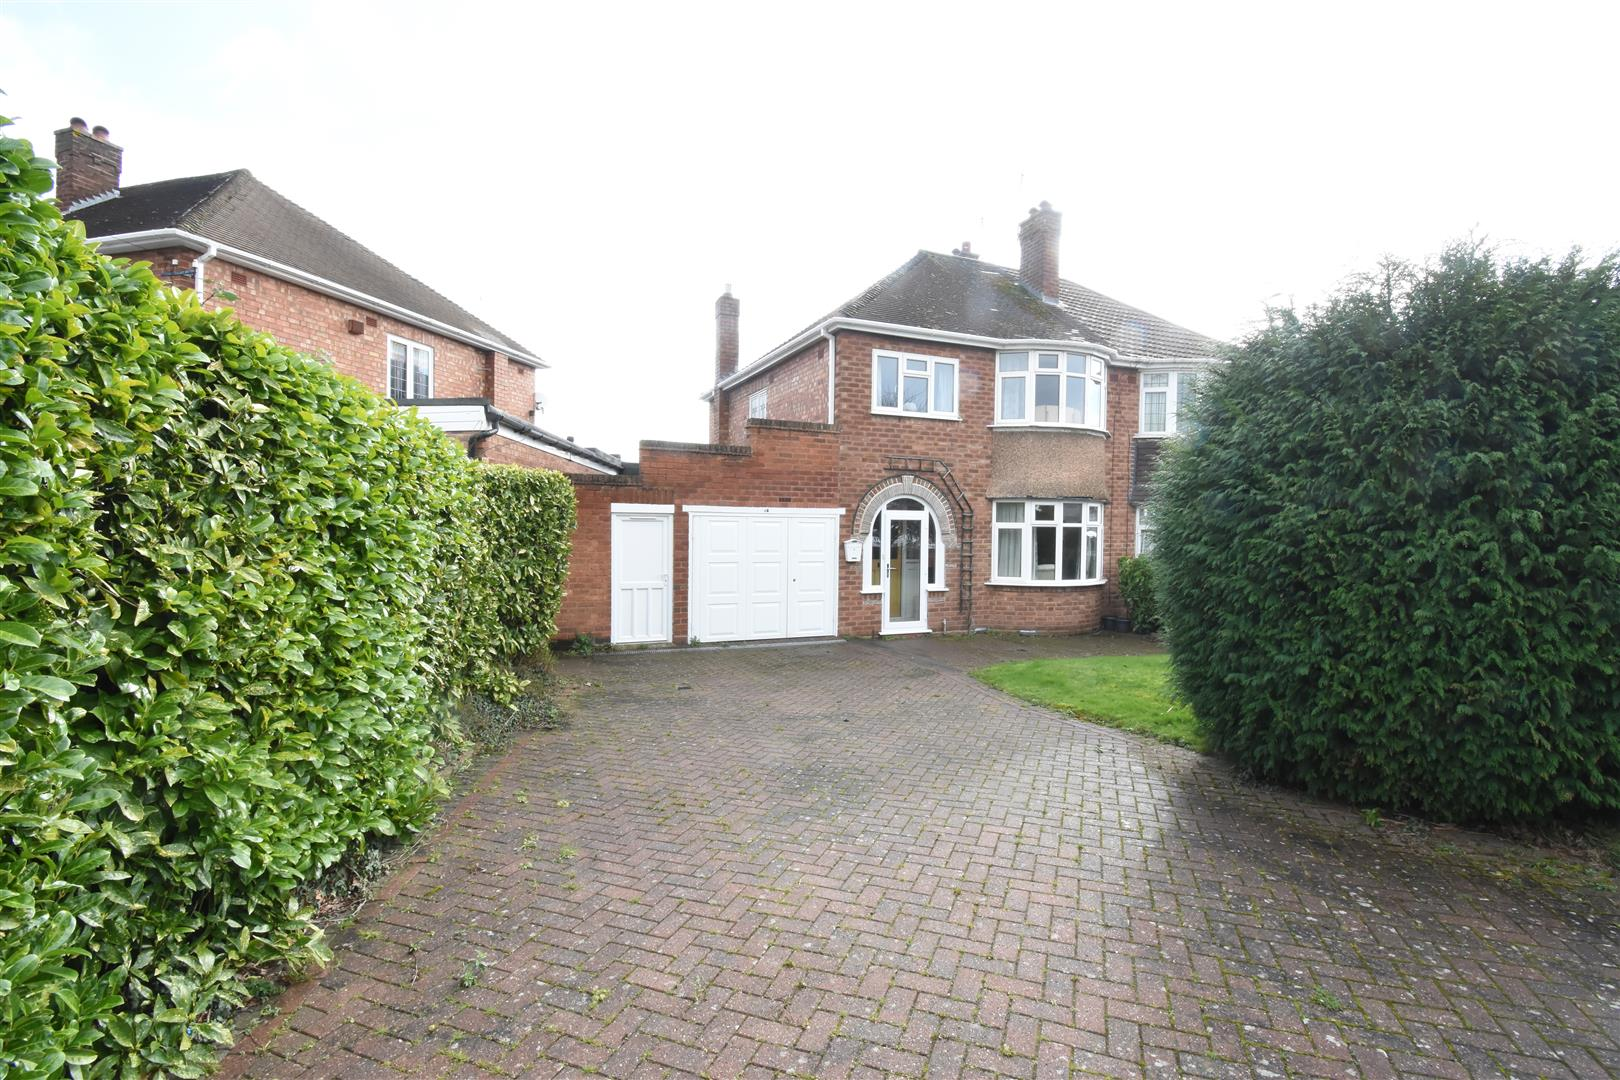 3 bed house for sale in Manor Park Road, Birmingham, B36